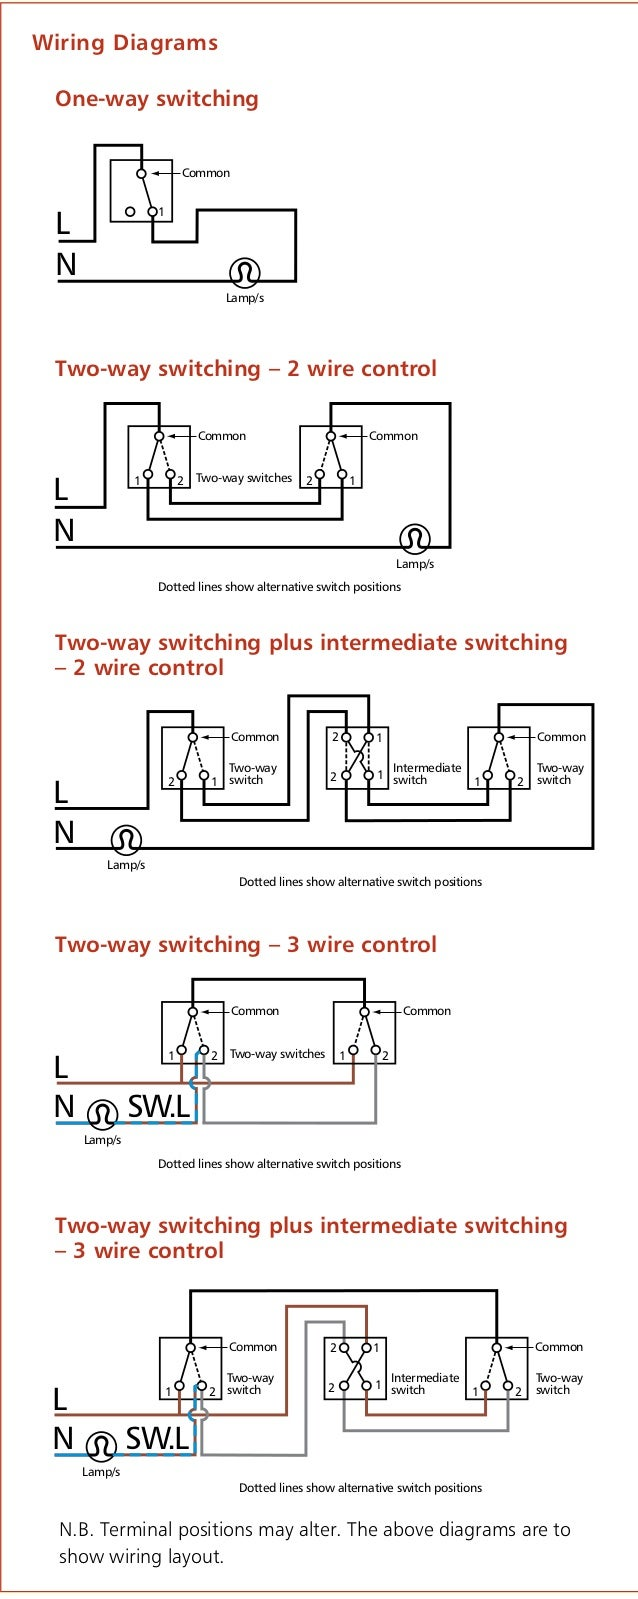 Wiring Diagrams Diagram For 2 Way Switch One Switching